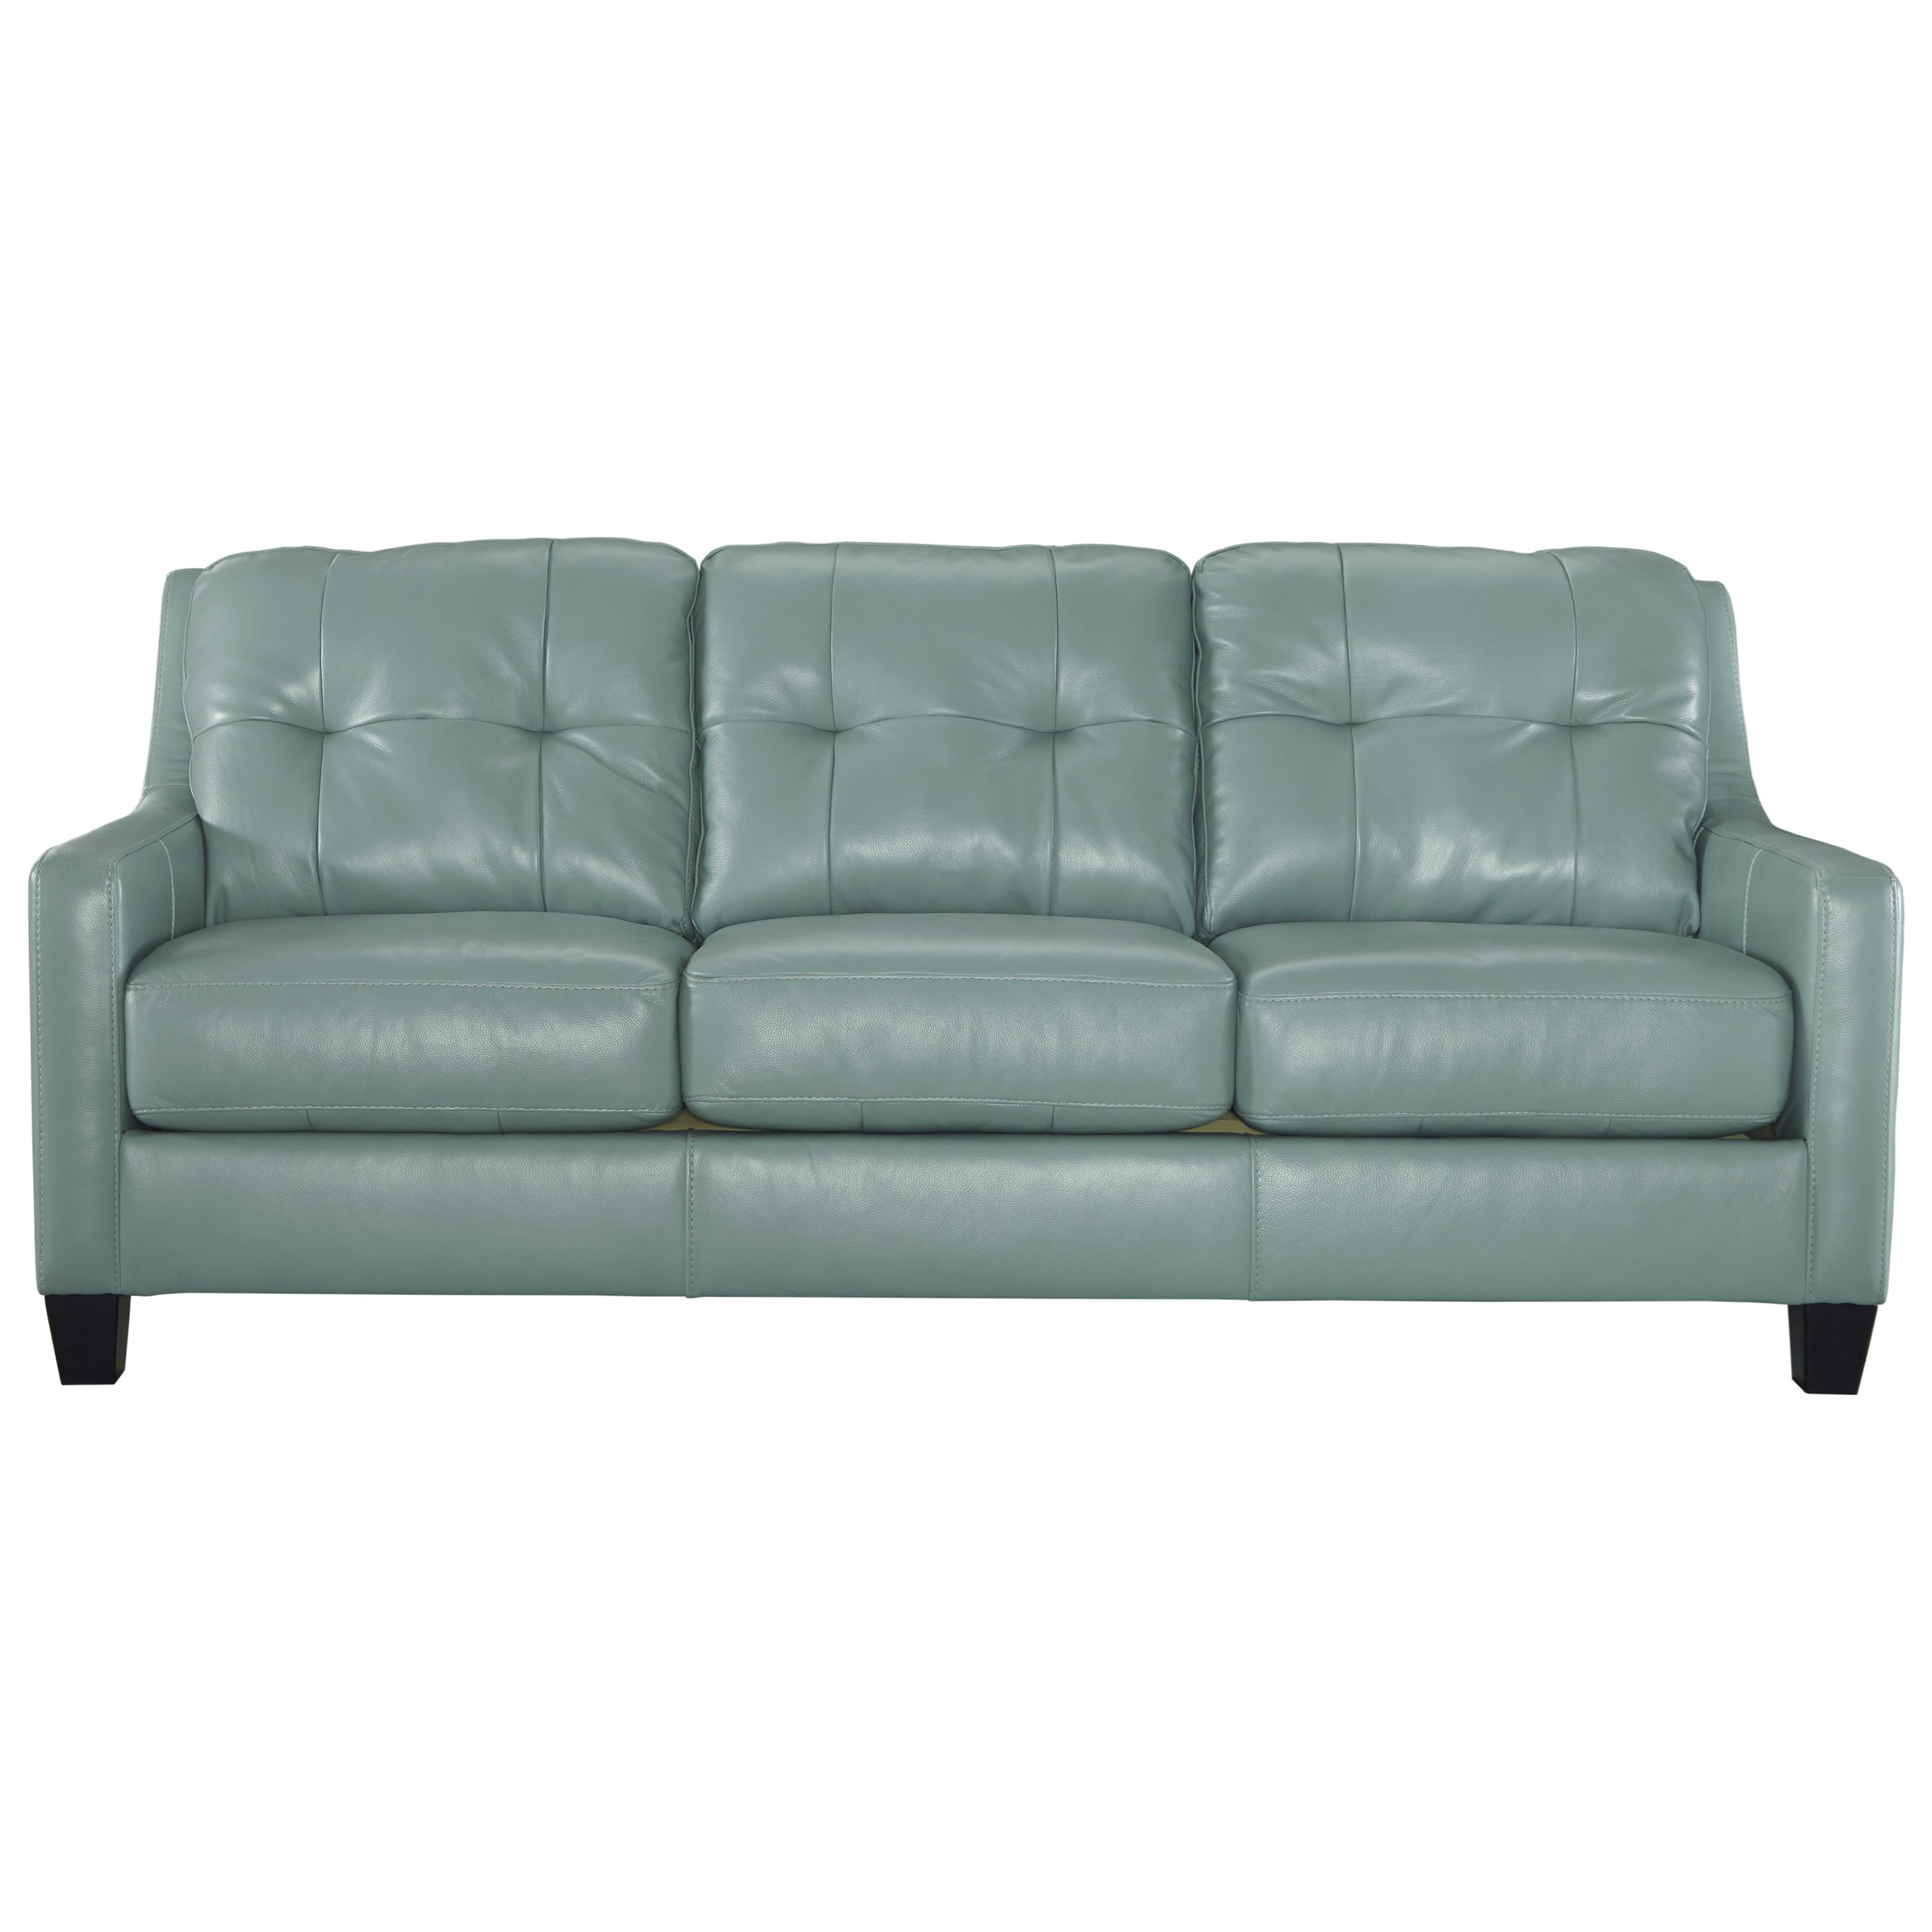 O'Kean Queen Sofa Sleeper by Signature Design by Ashley at Lapeer Furniture & Mattress Center